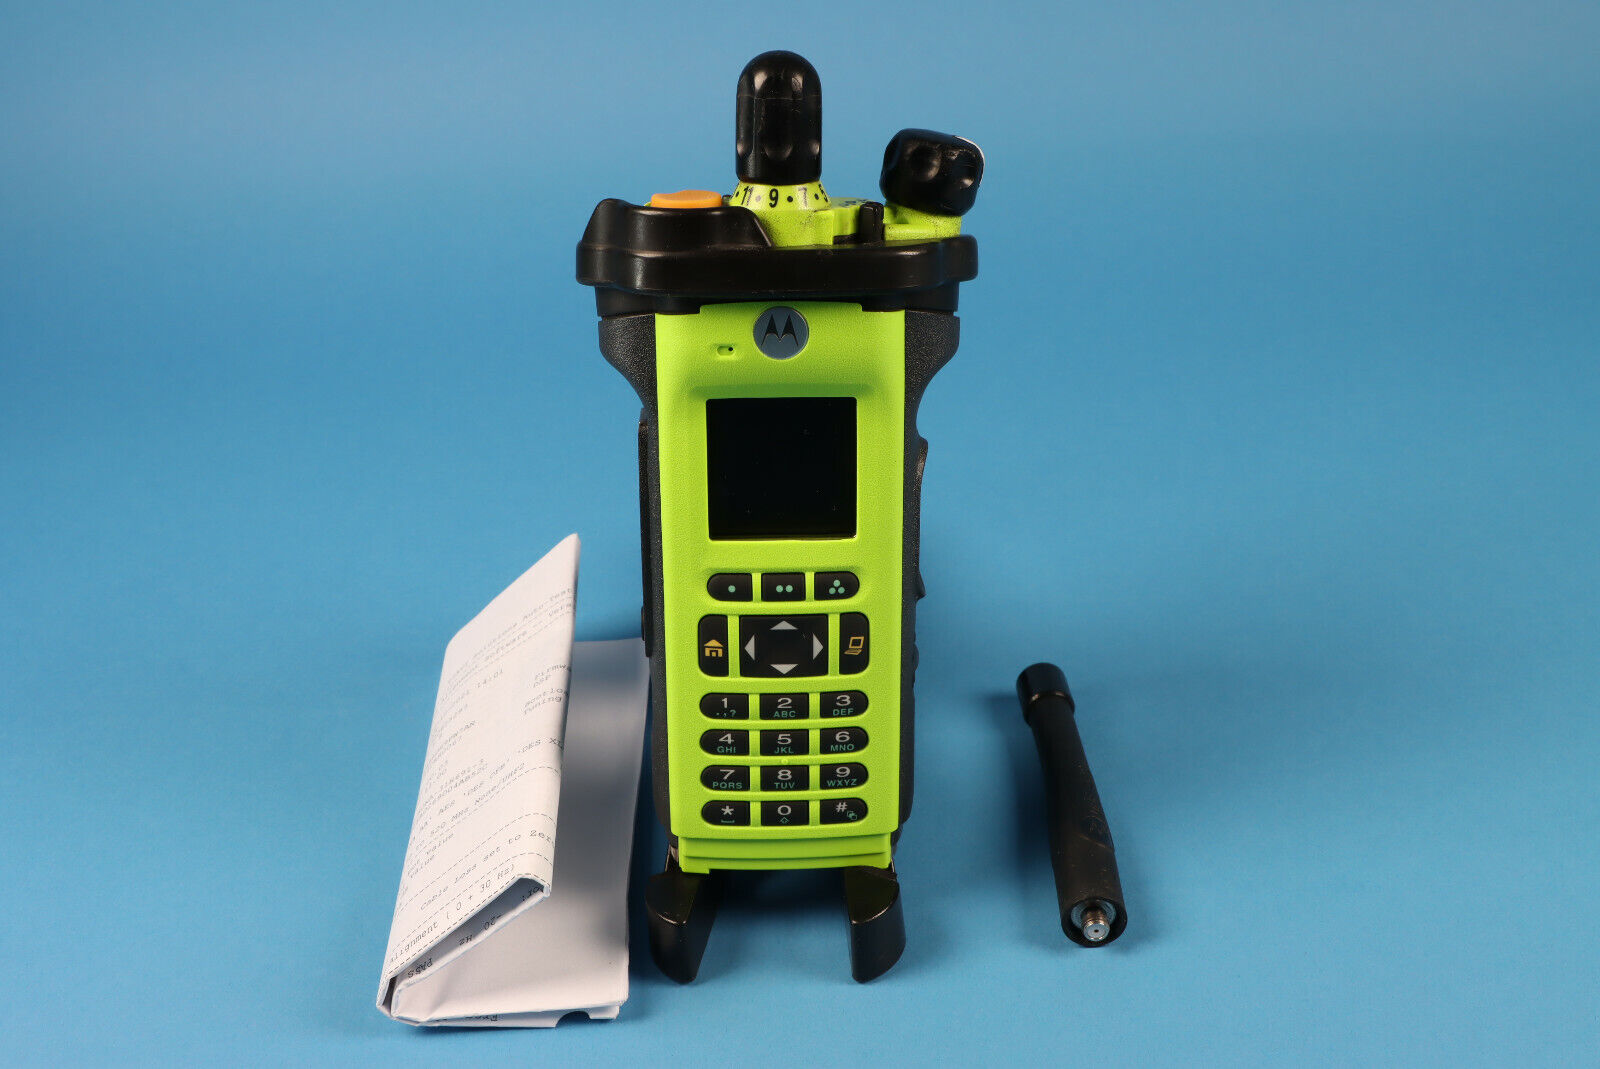 Motorola APX6000XE UHF R2 FPP w/ antenna Green/Black Housing with Tags. Available Now for 2200.00